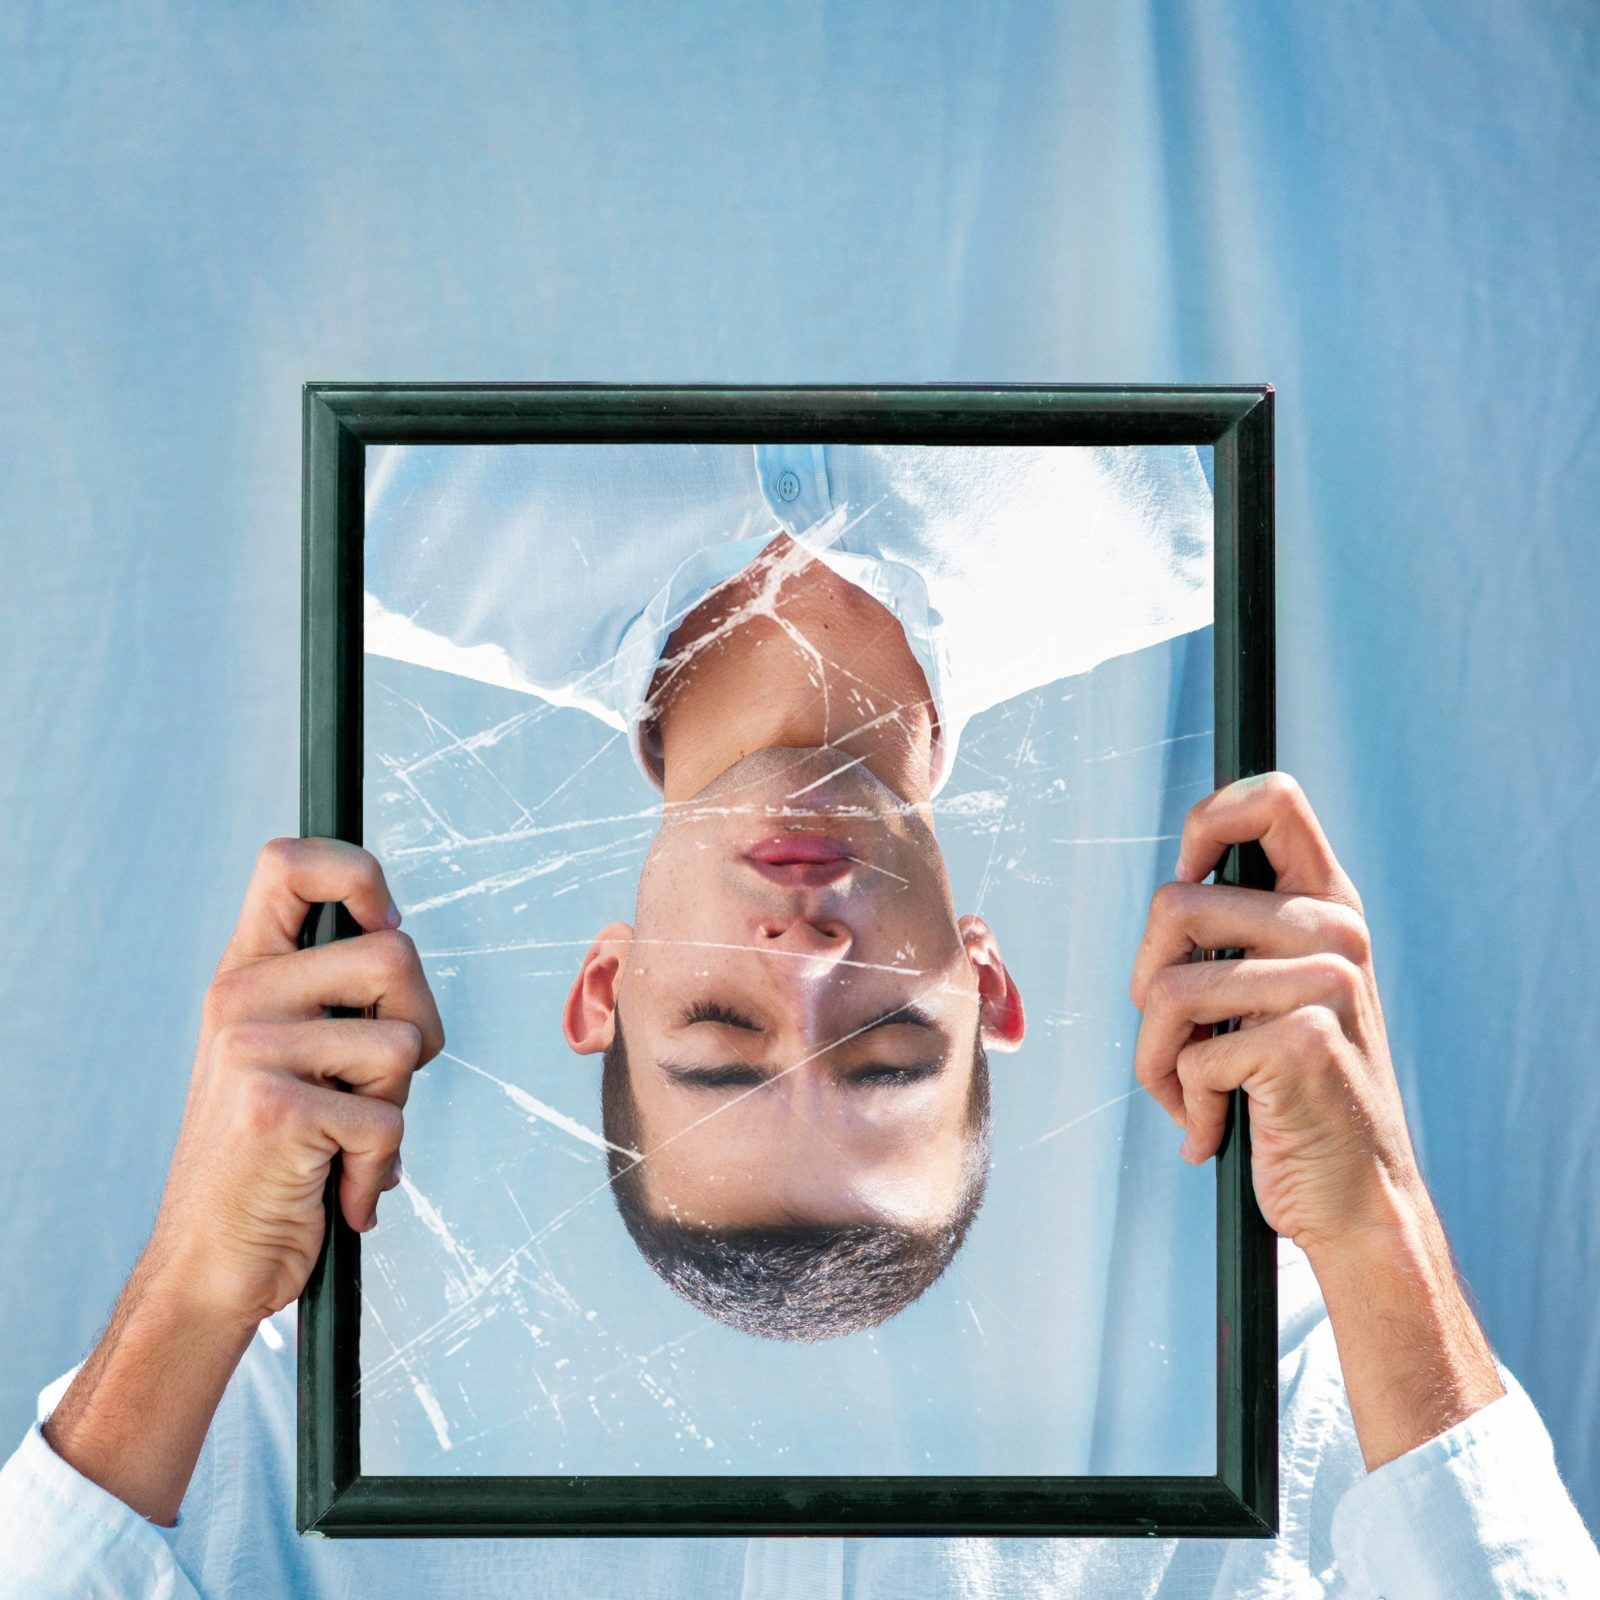 Man holding an upside down broken mirror with his own reflection on it